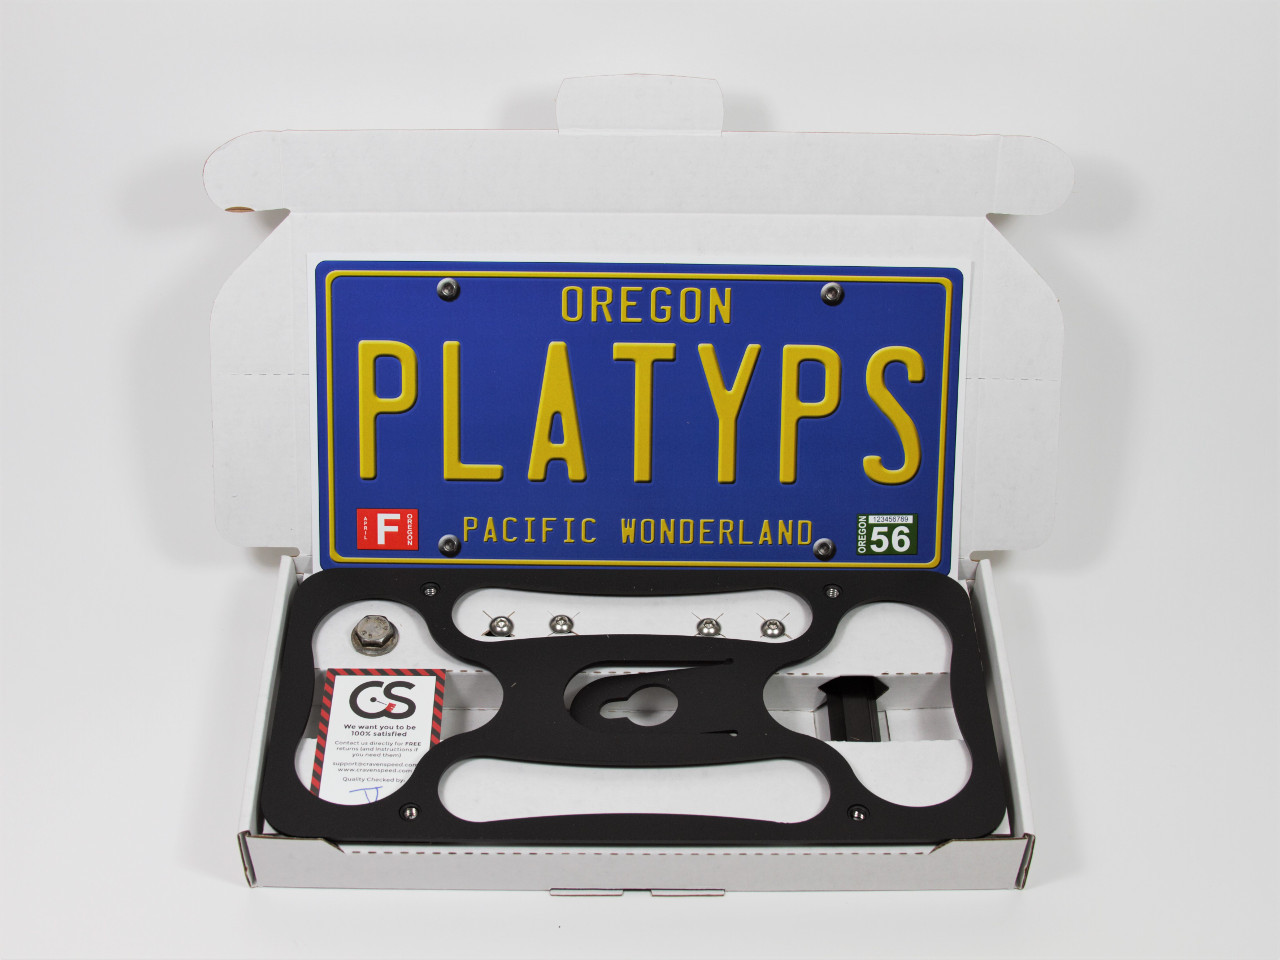 Assembled kit of The Platypus License Plate Mount for 2006-2011 BMW 335i and 335d Sedan